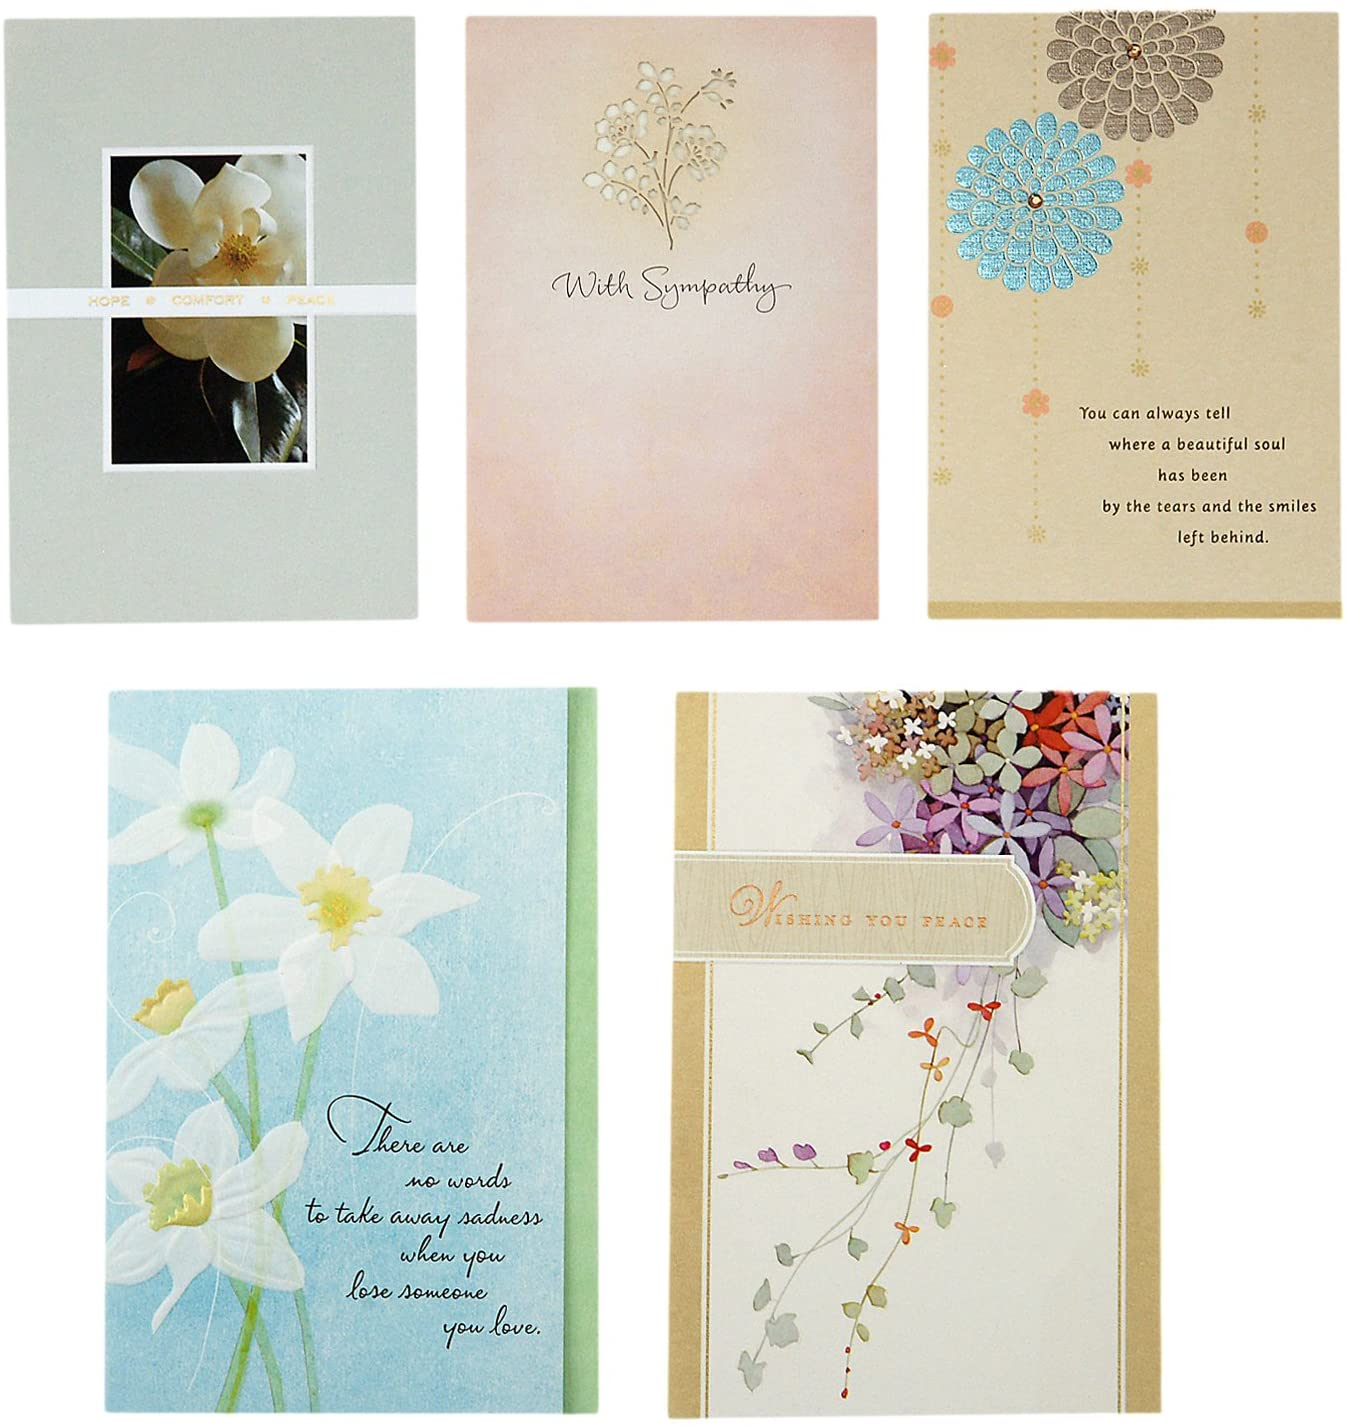 Hallmark Sympathy Cards Assortment Pack (5 Condolence Cards with Envelopes)